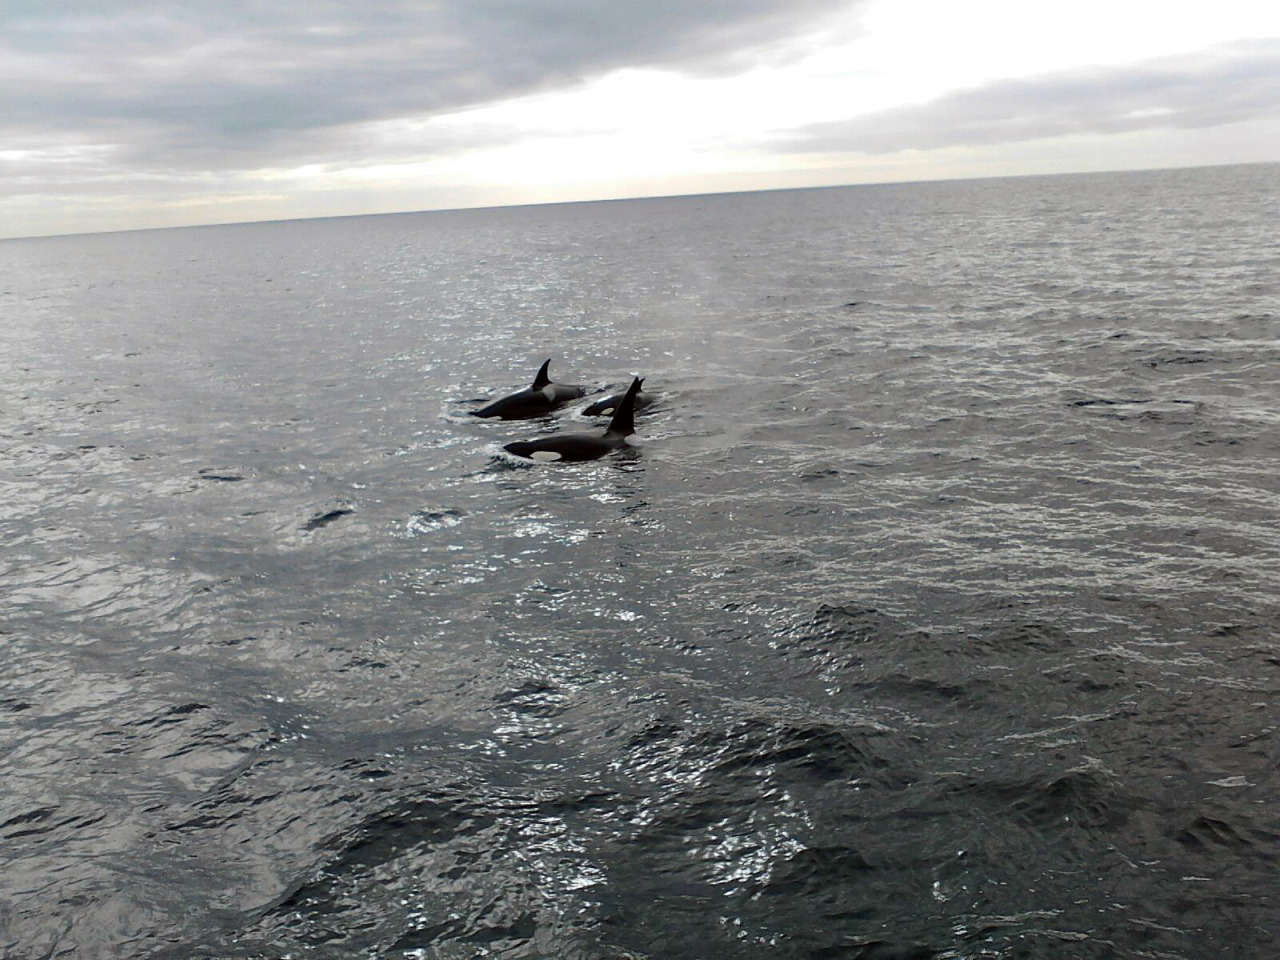 My friend Robert saw this Orca pod near Anacapa Island today.